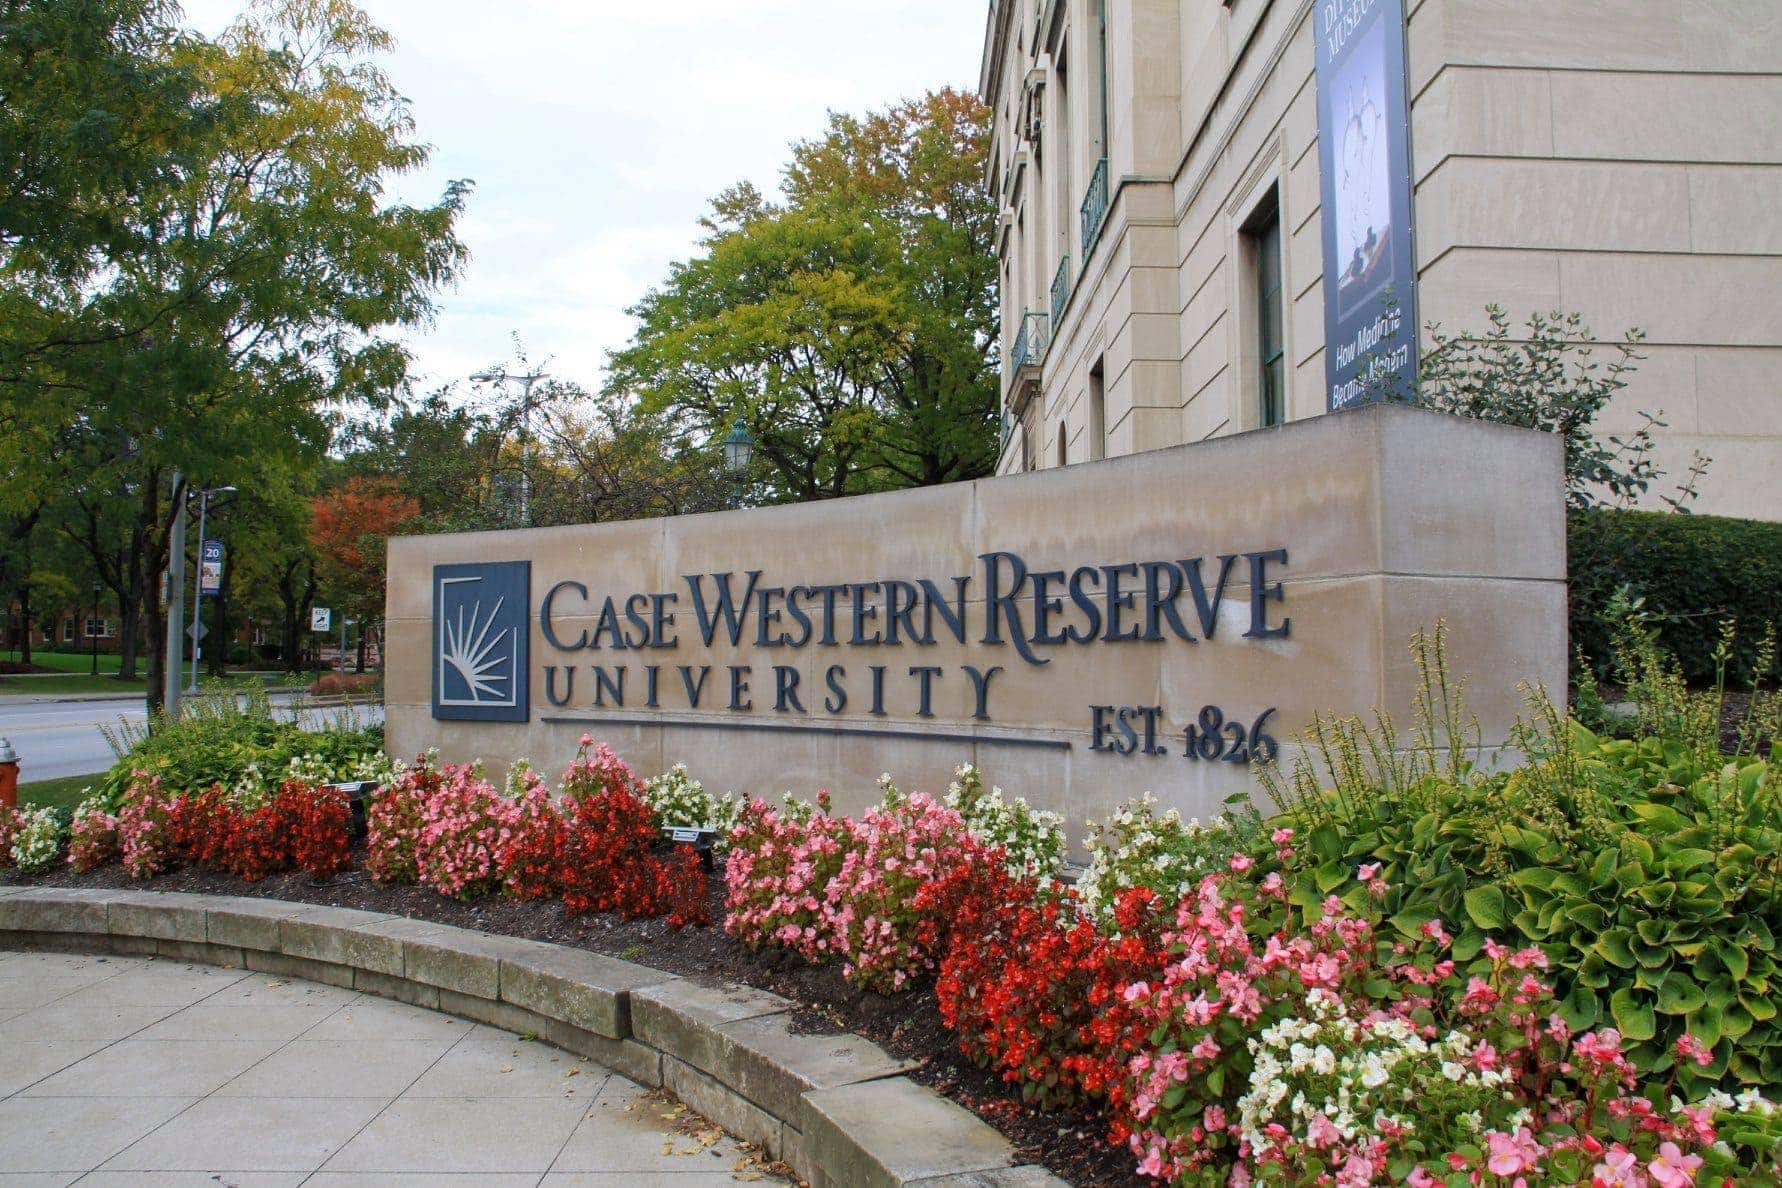 Case Western Reserve University – Colleges of Distinction: Profile, Highlights, and Statistics